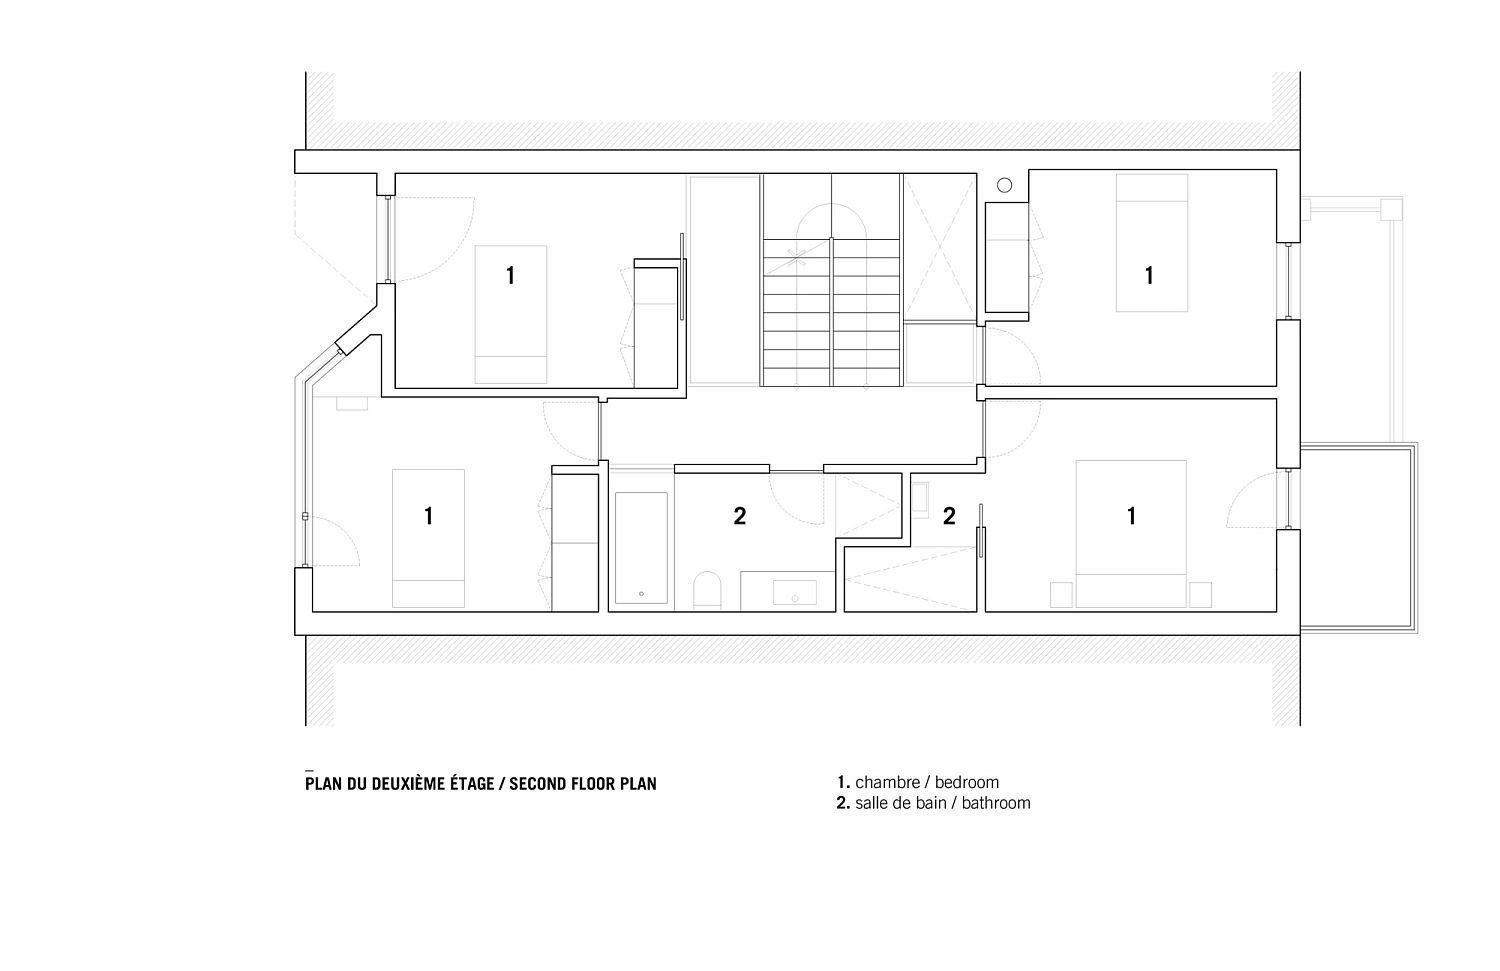 Second floor plan of the revamped duplex in Canada